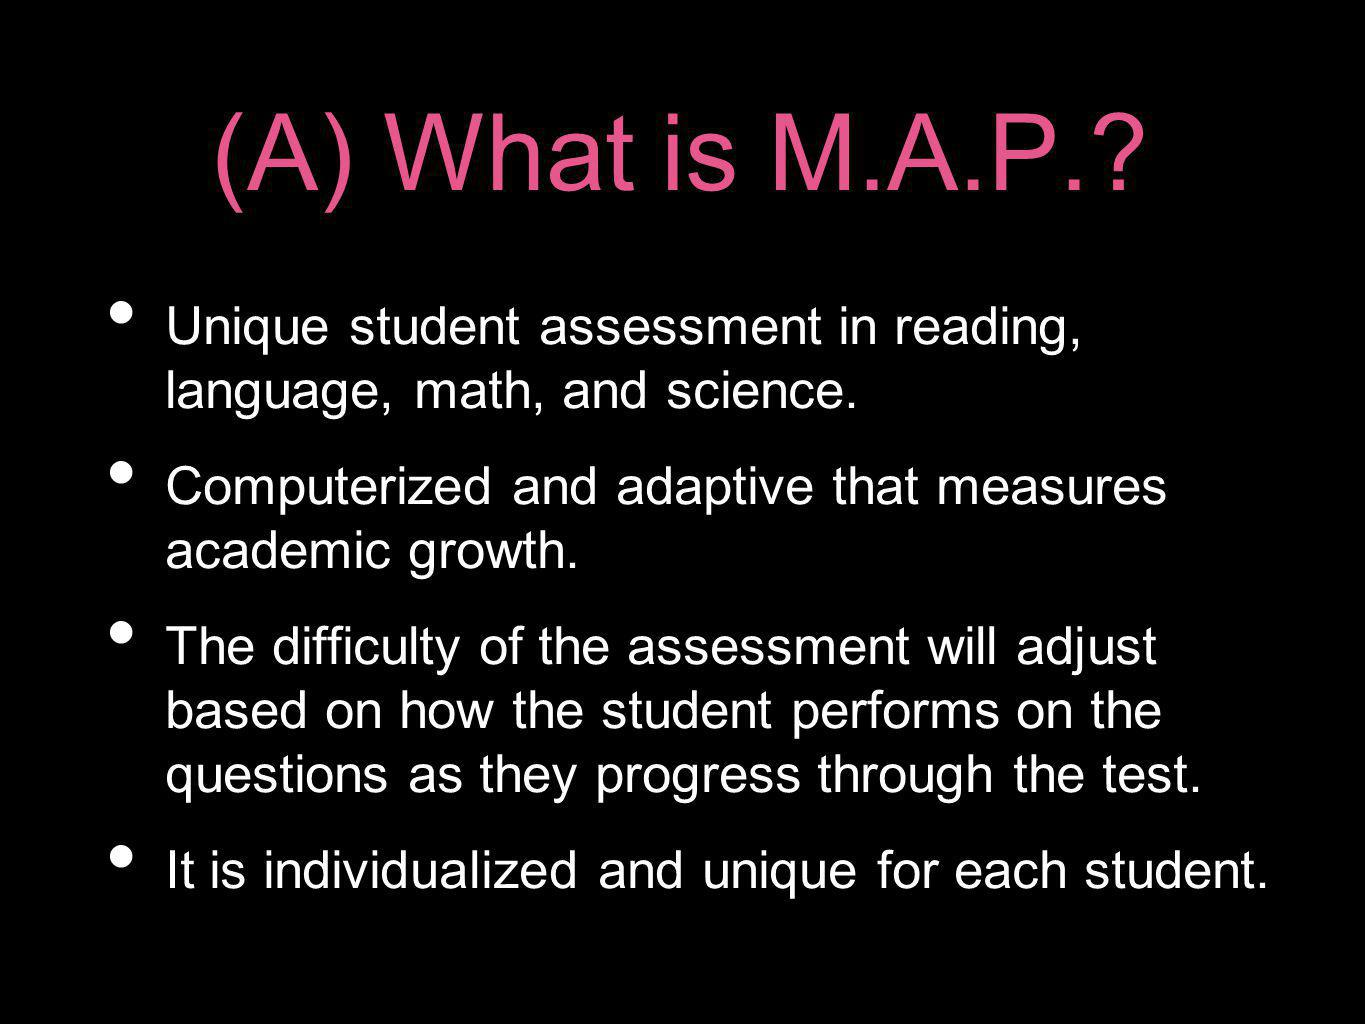 (A) What is M.A.P. Unique student assessment in reading, language, math, and science. Computerized and adaptive that measures academic growth.